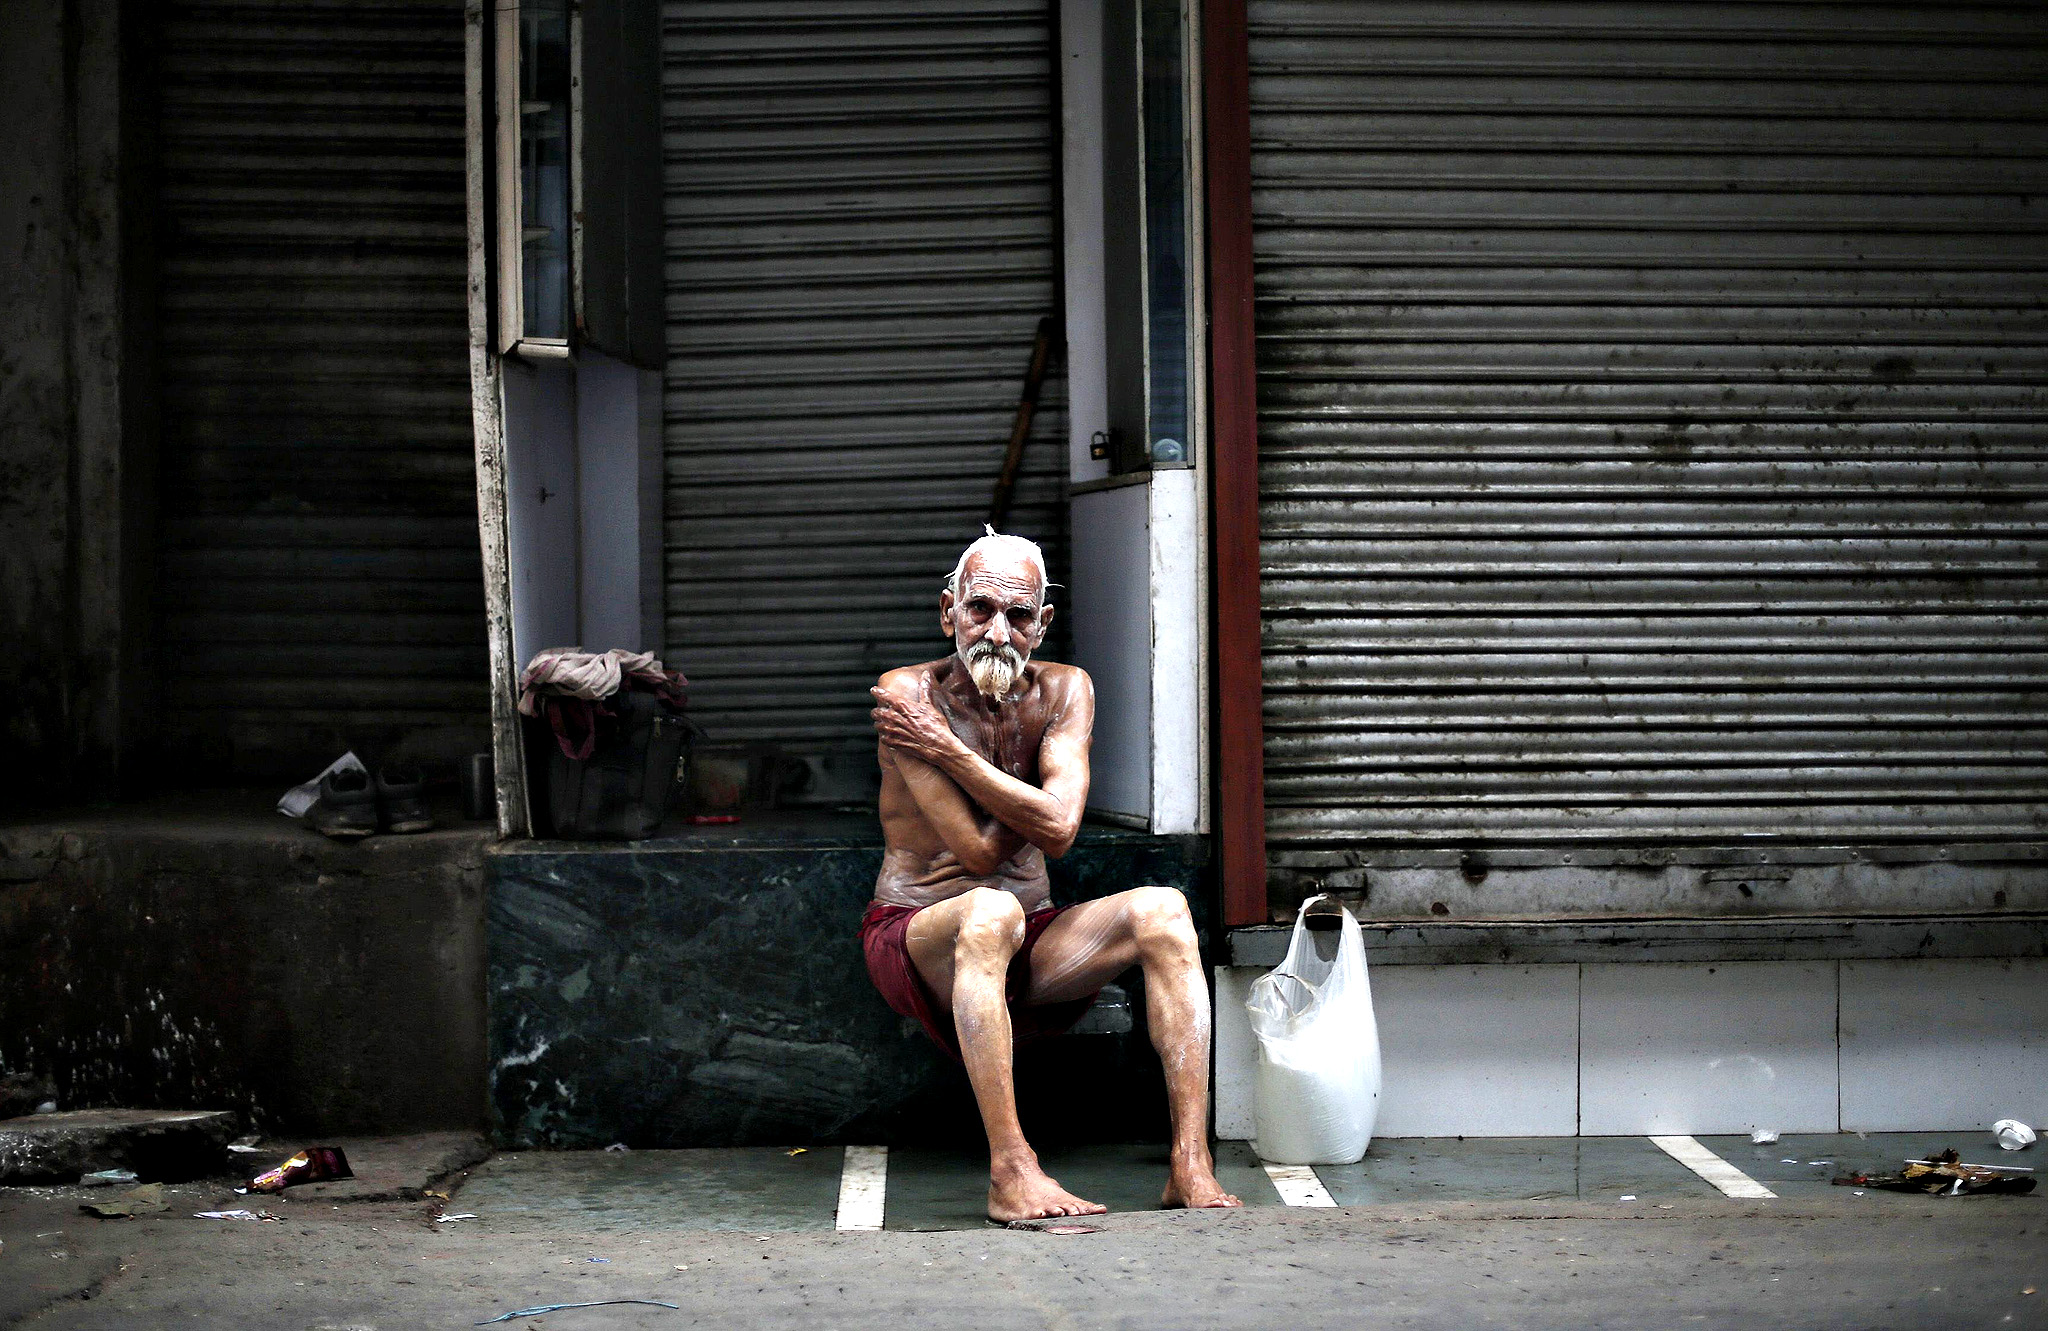 A man bathes in front of closed shops along the roadside in the old quarters of Delhi October 8, 2014.